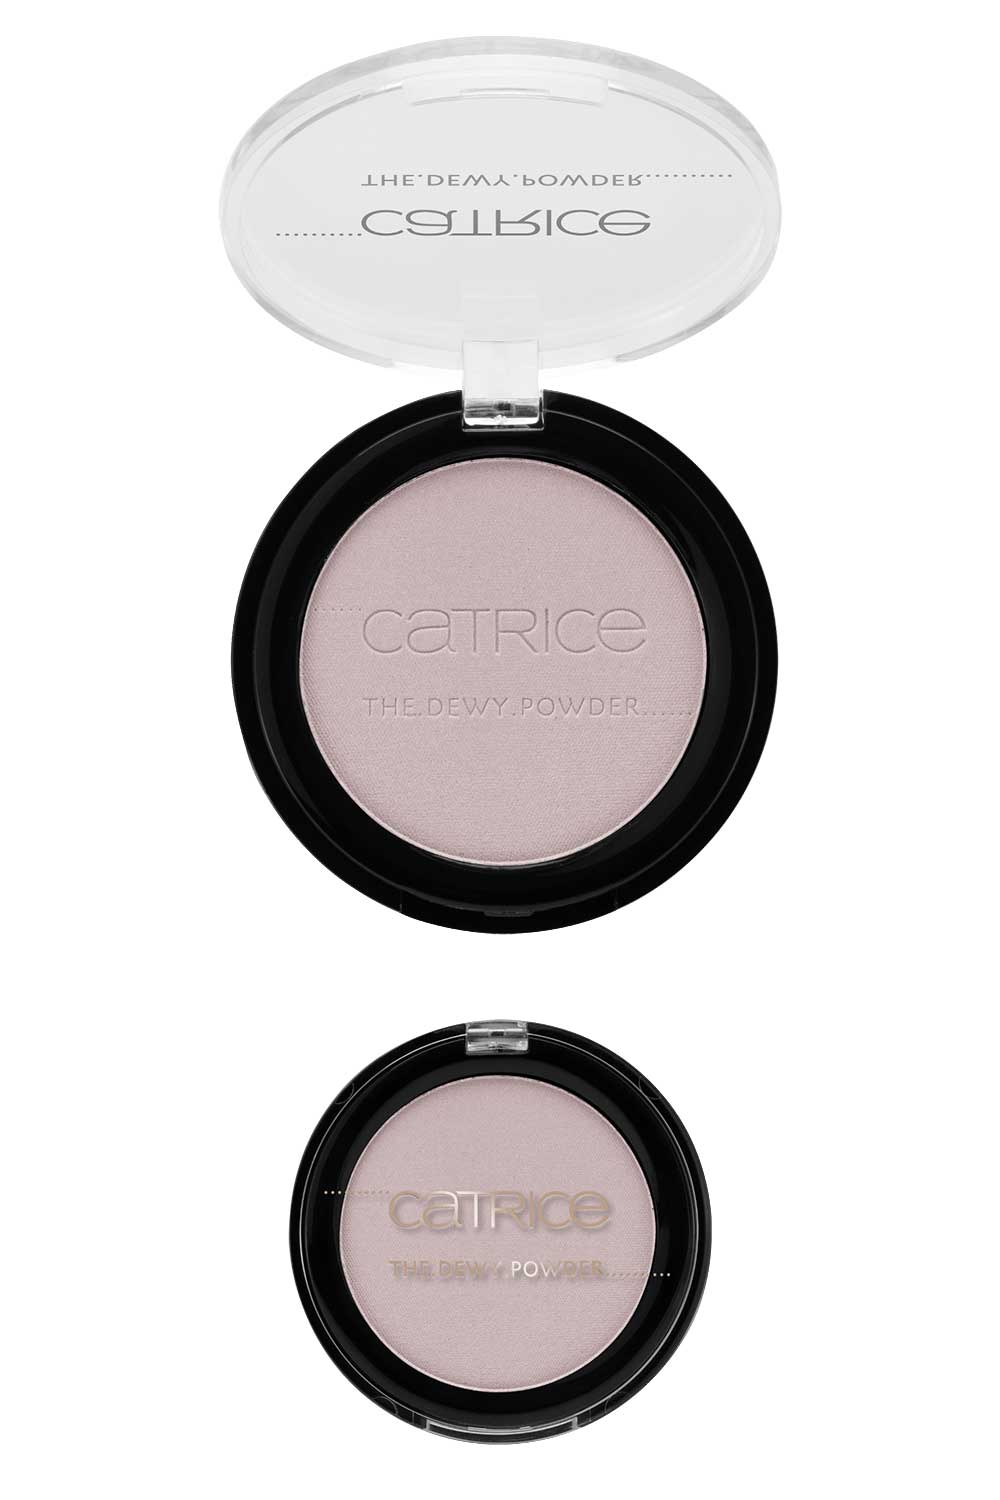 Catrice The Dewy Pink compact illuminating routine